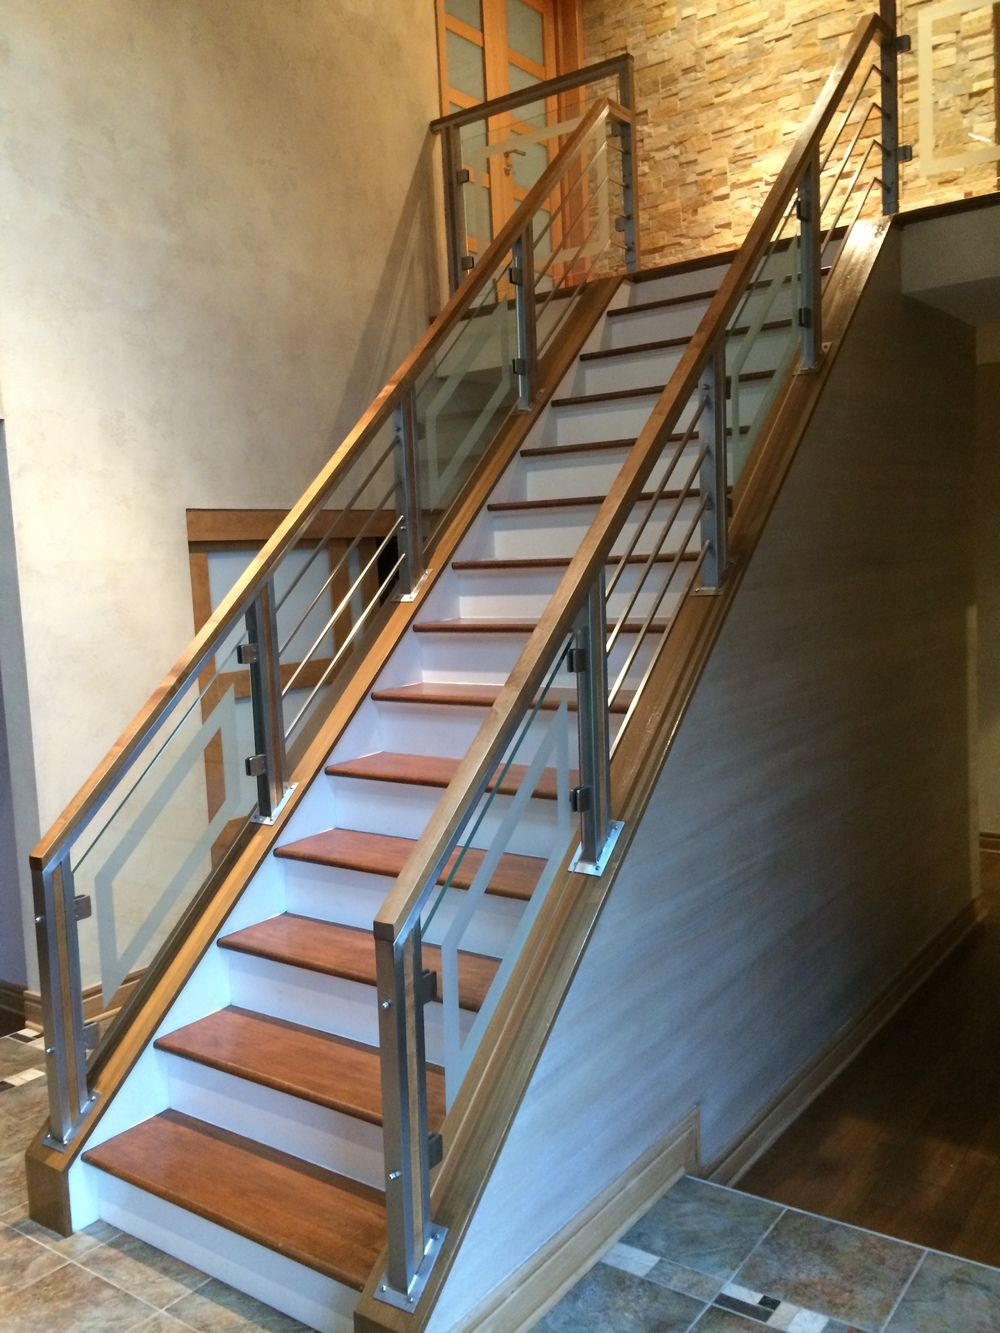 Stainless steel horizontal rods and glass railing with